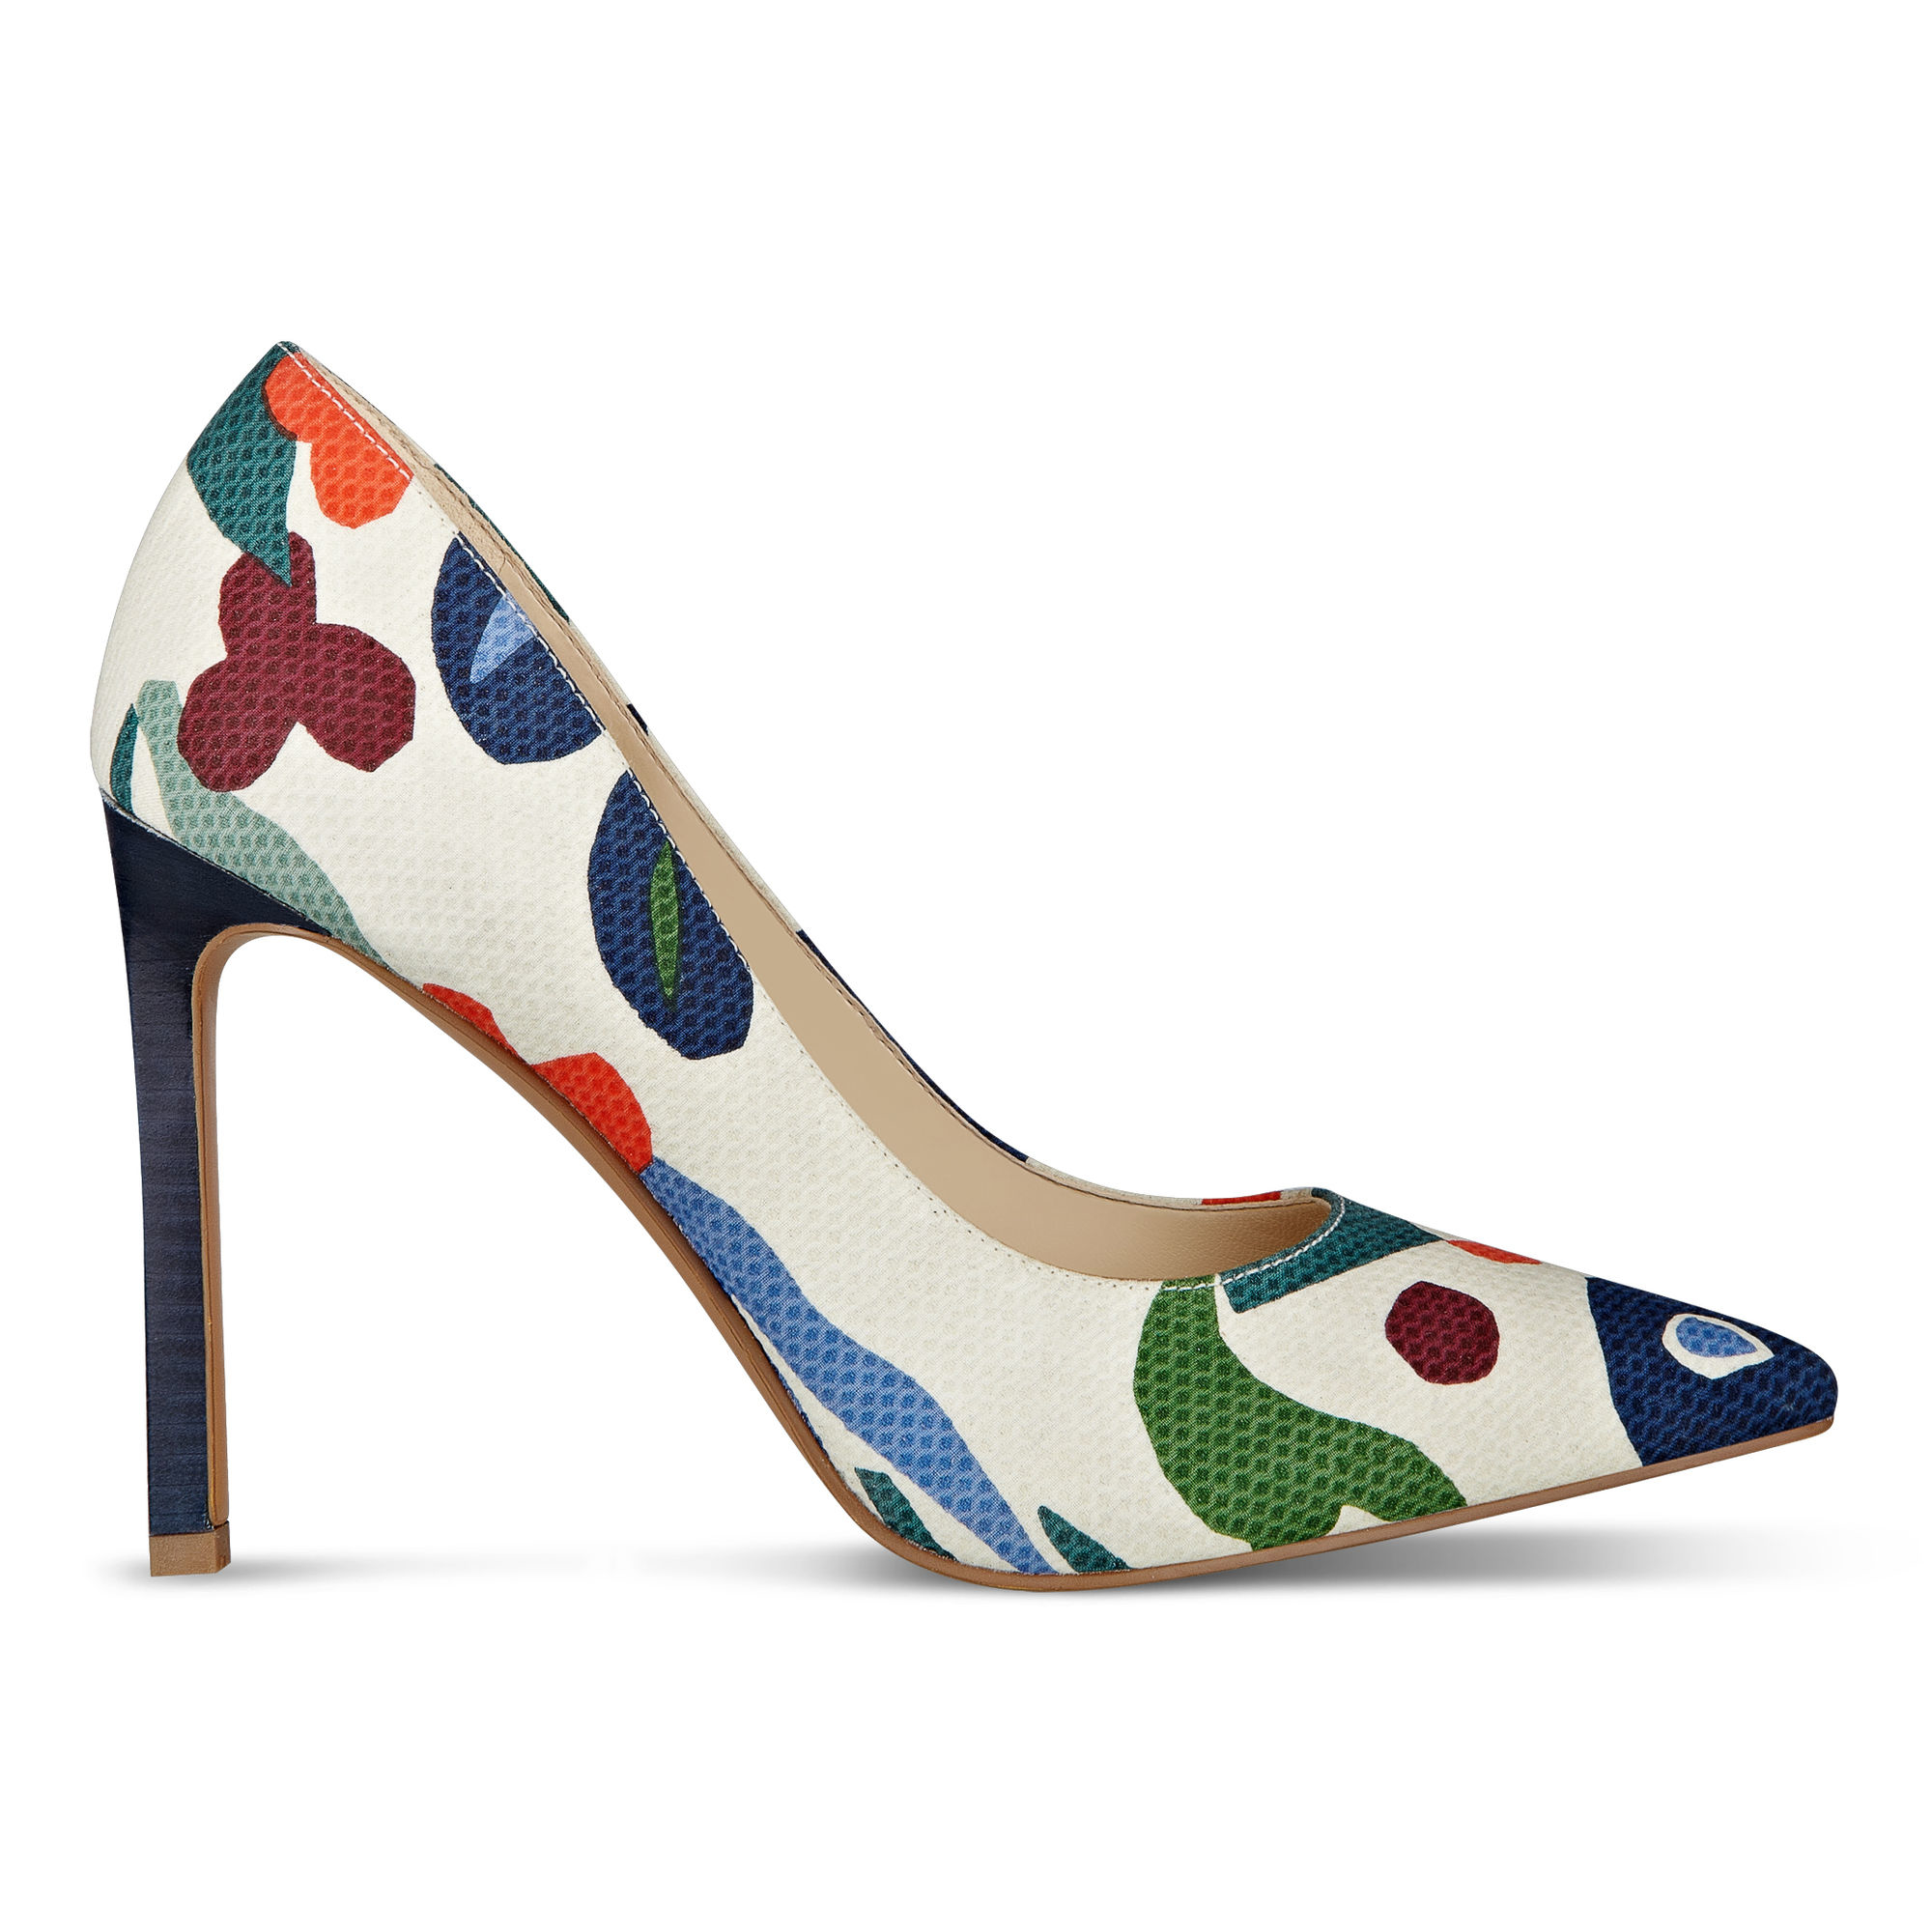 clearance clearance discount 2015 new Nine West Pumps - Tatiana free shipping fake dkIgh